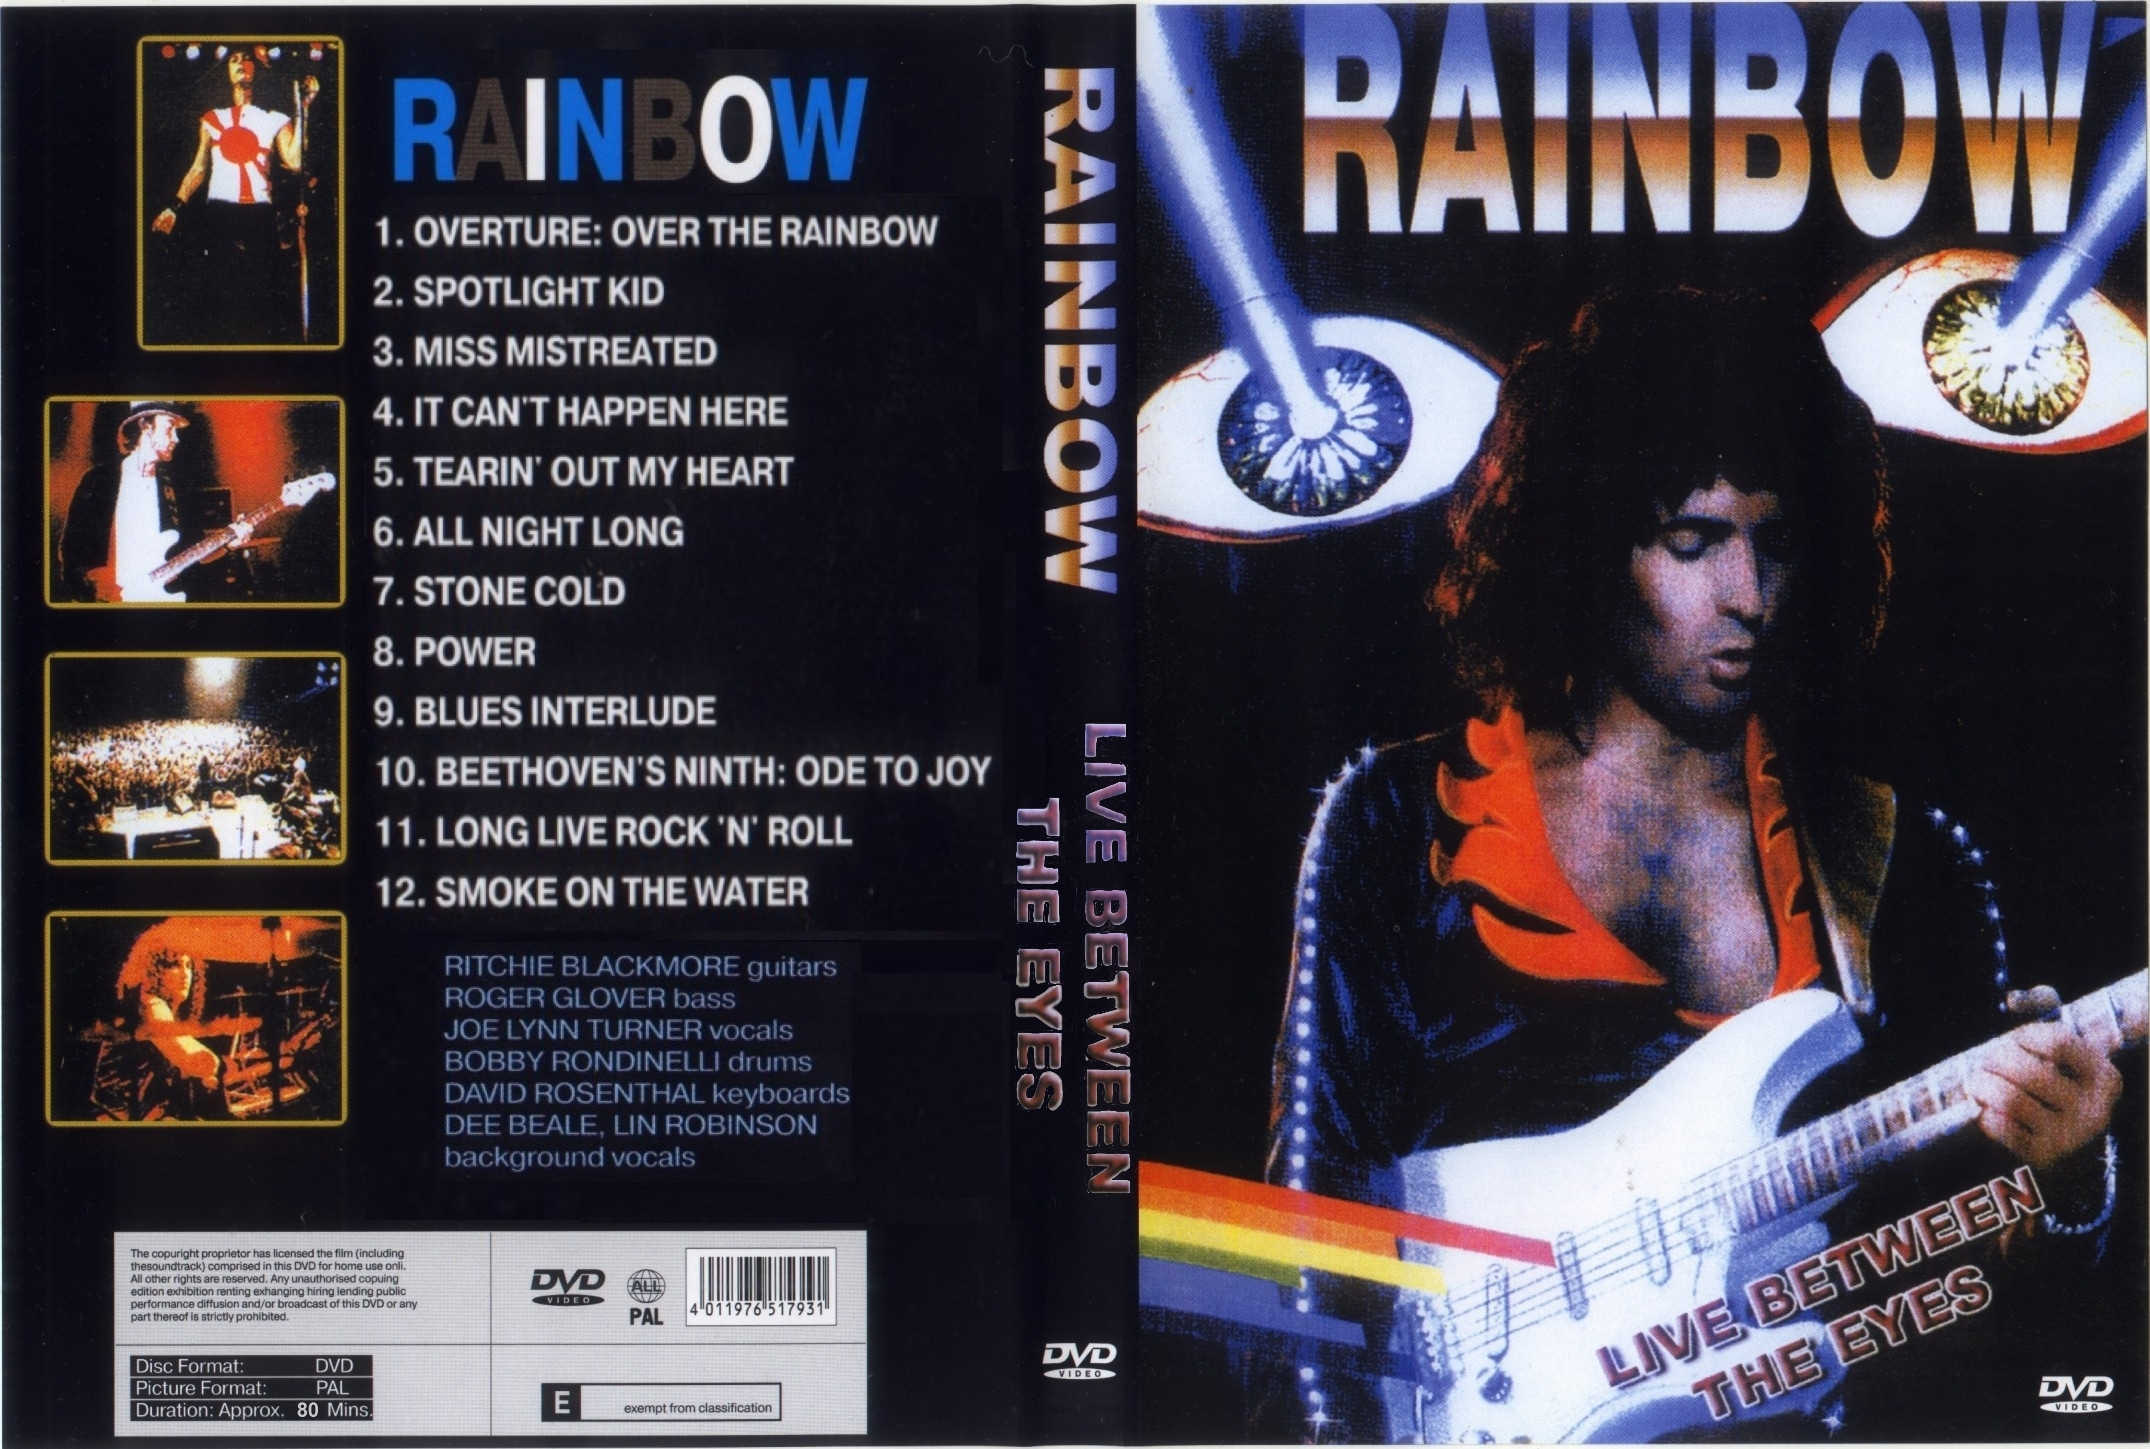 Rainbow - Live Between The Eyes